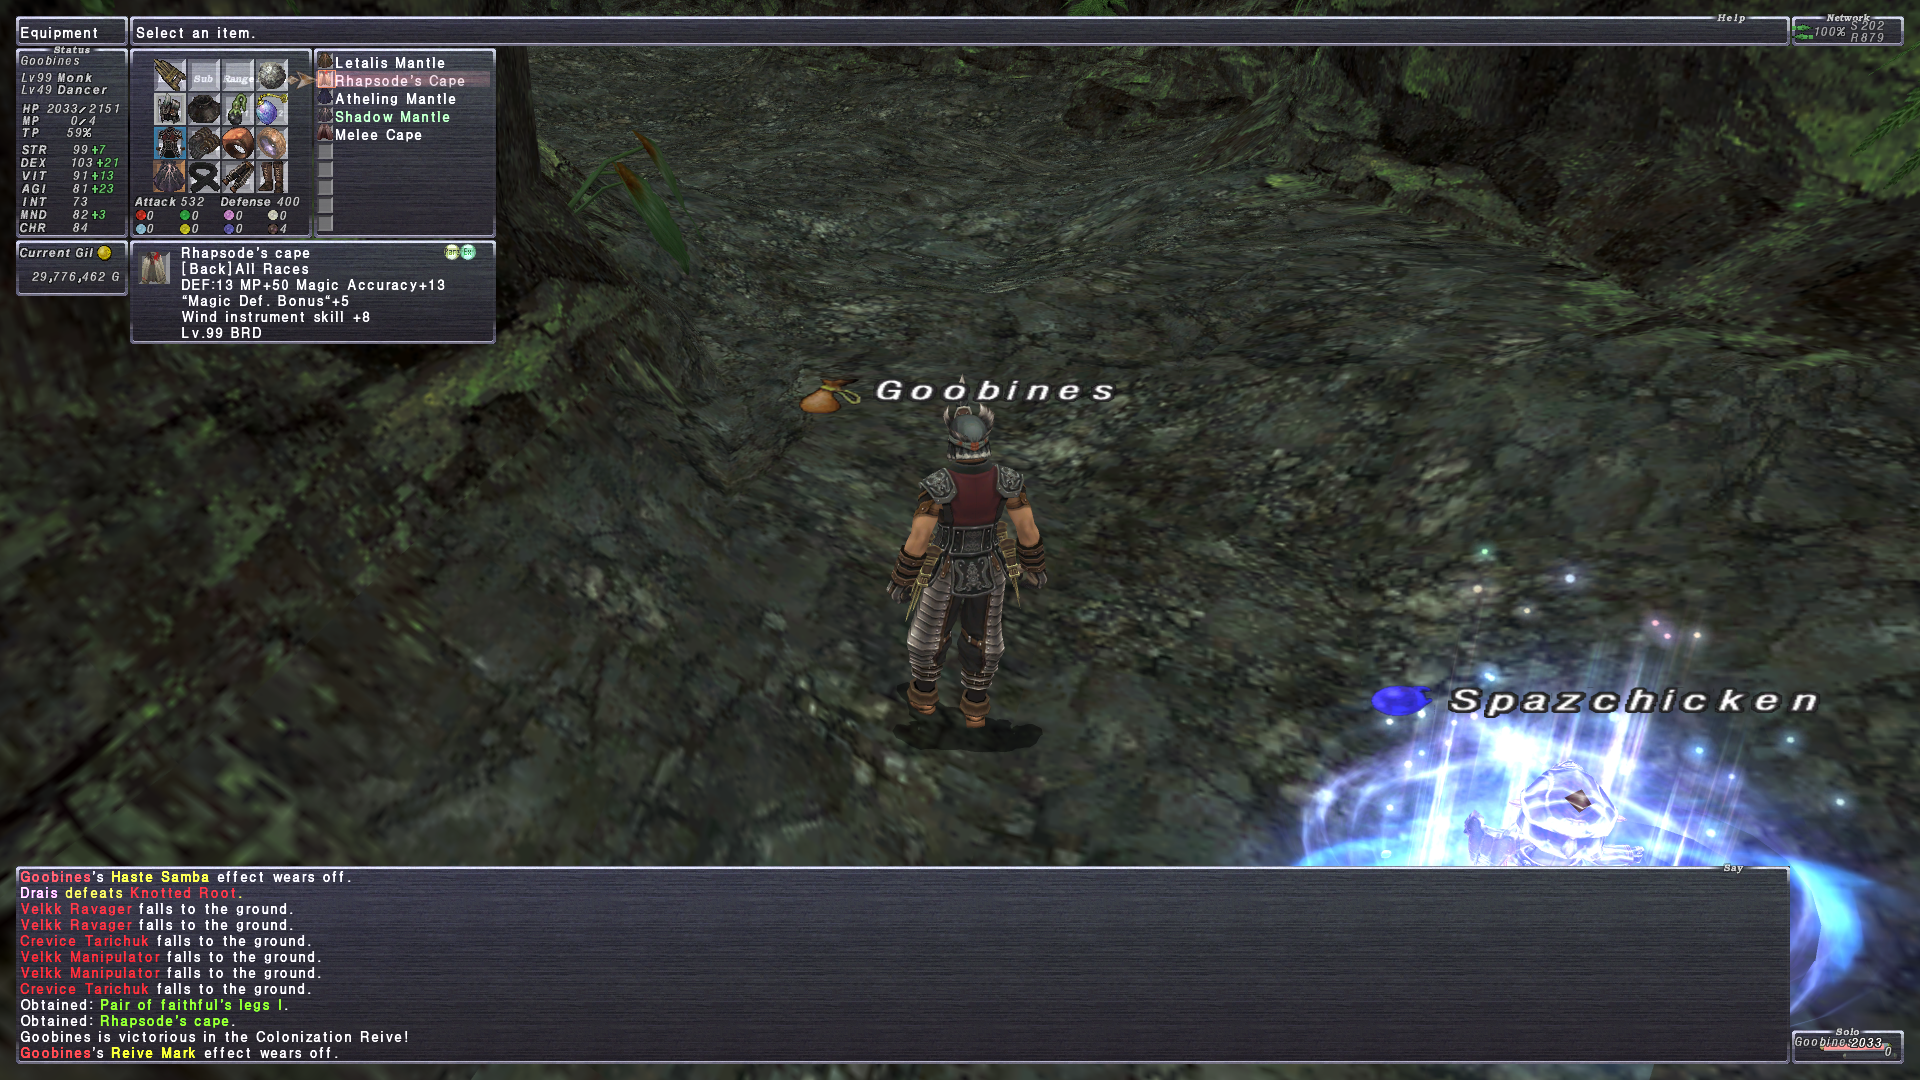 verby ffxi this which neither happened since update version 07082013 wins mantle discussion digging contest